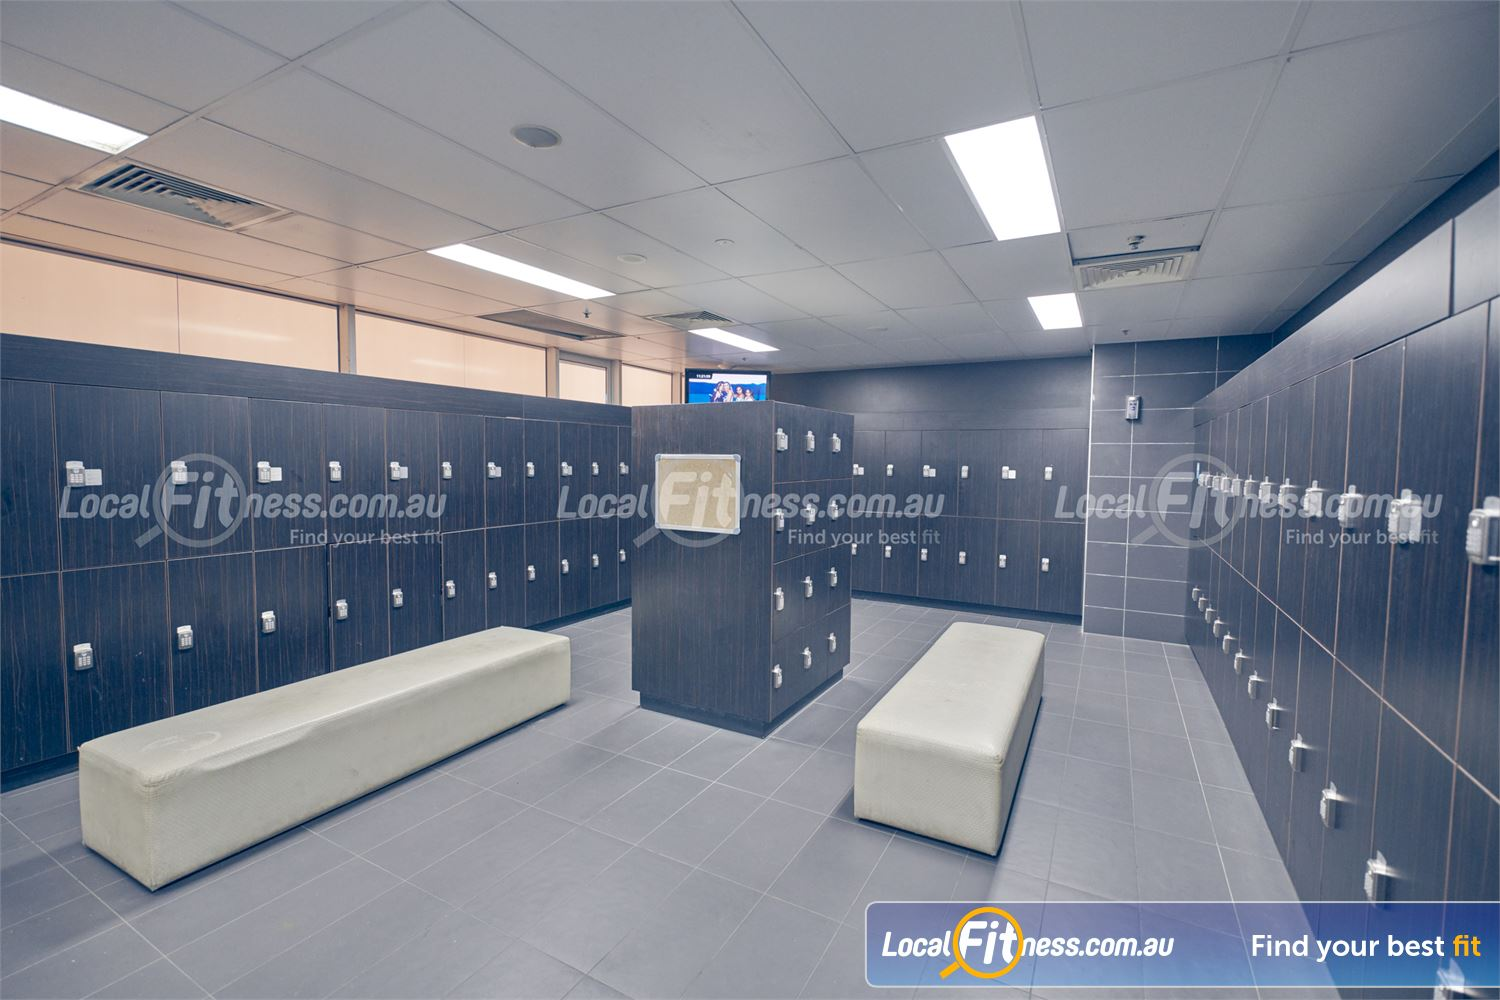 Goodlife Health Clubs Near Glen Iris 5-star change room facilities with relaxing steam room.